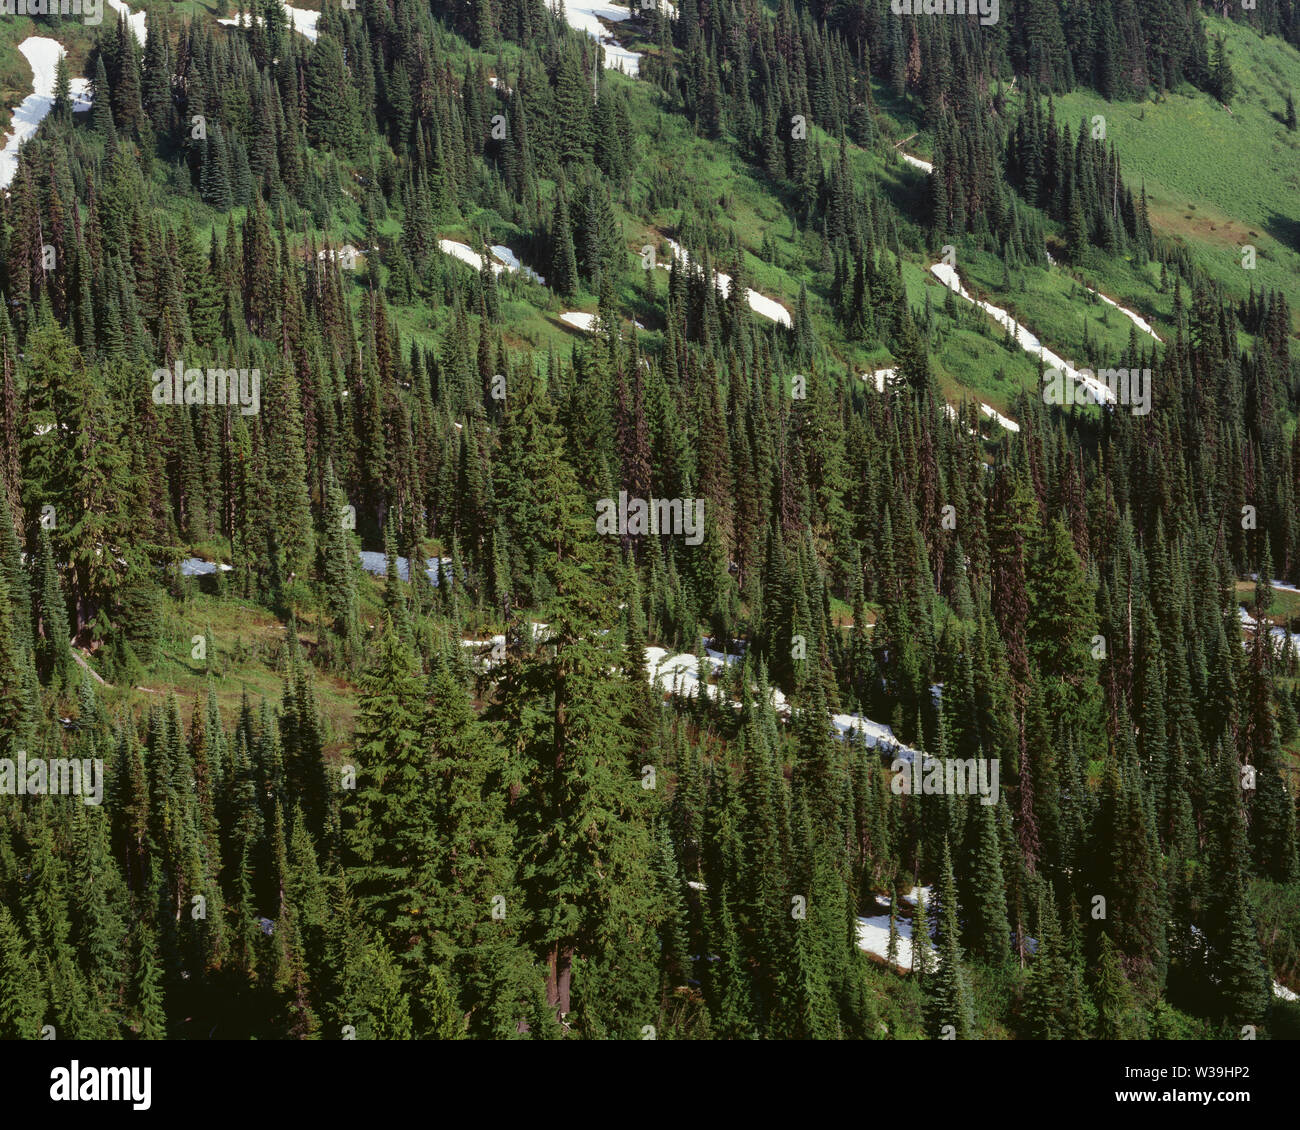 USA, Washington, Mt. Rainier National Park, Upper elevation evergreens on south flanks of Mt. Rainier with lush meadows and lingering snow. - Stock Image